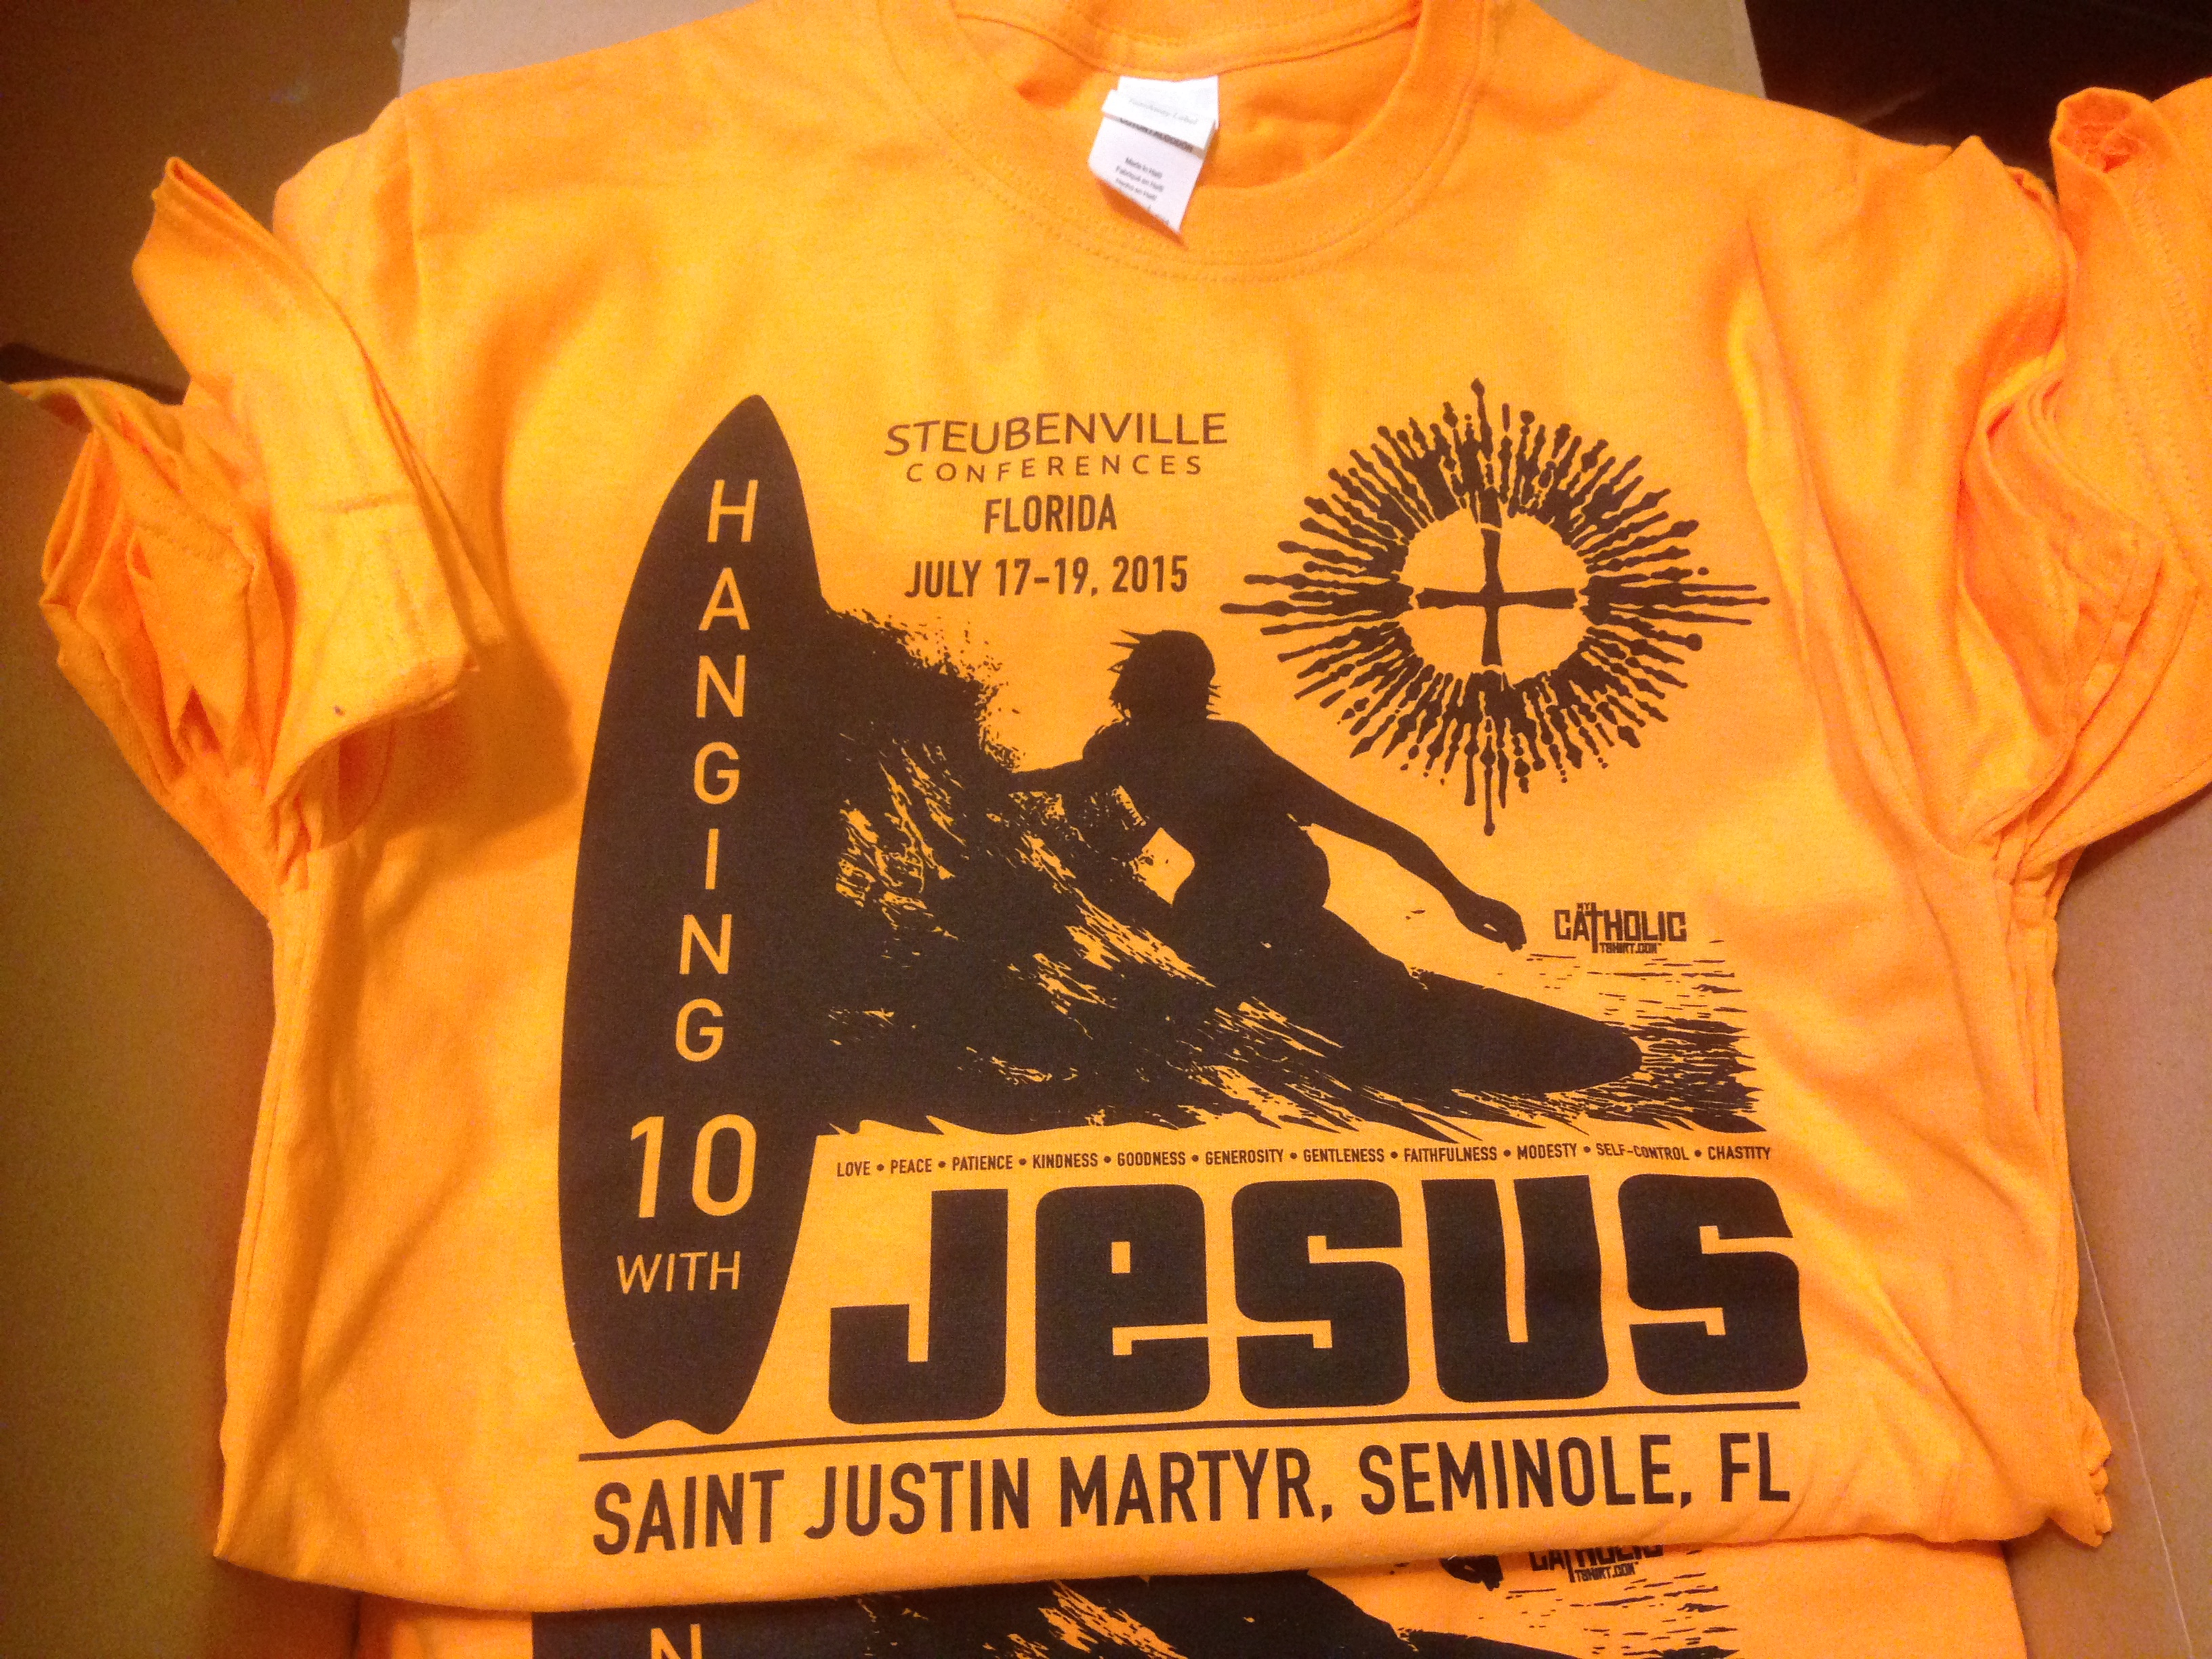 Youth Group T Shirts